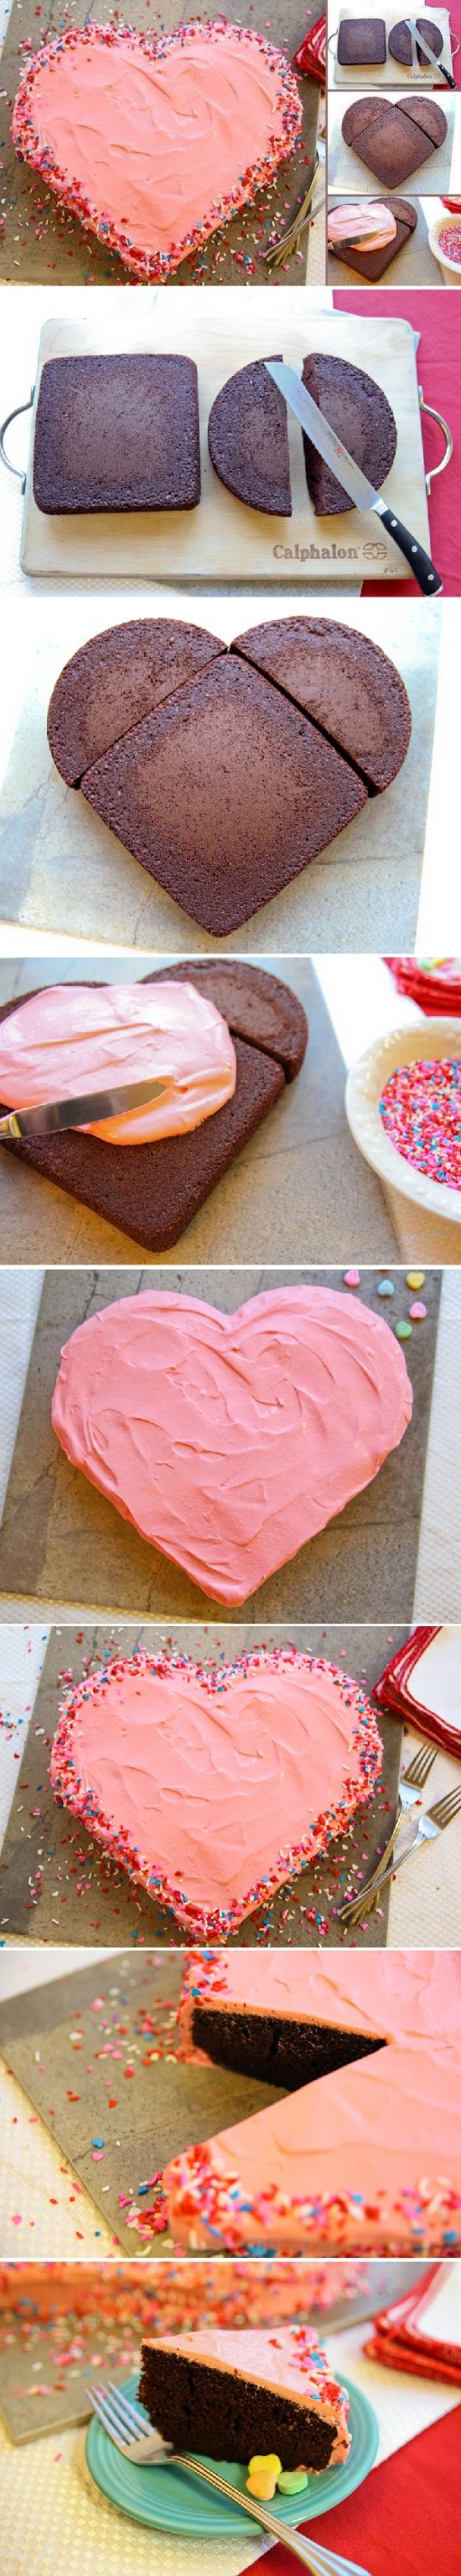 Valentine's Day Heart-Shaped Cake Recipe